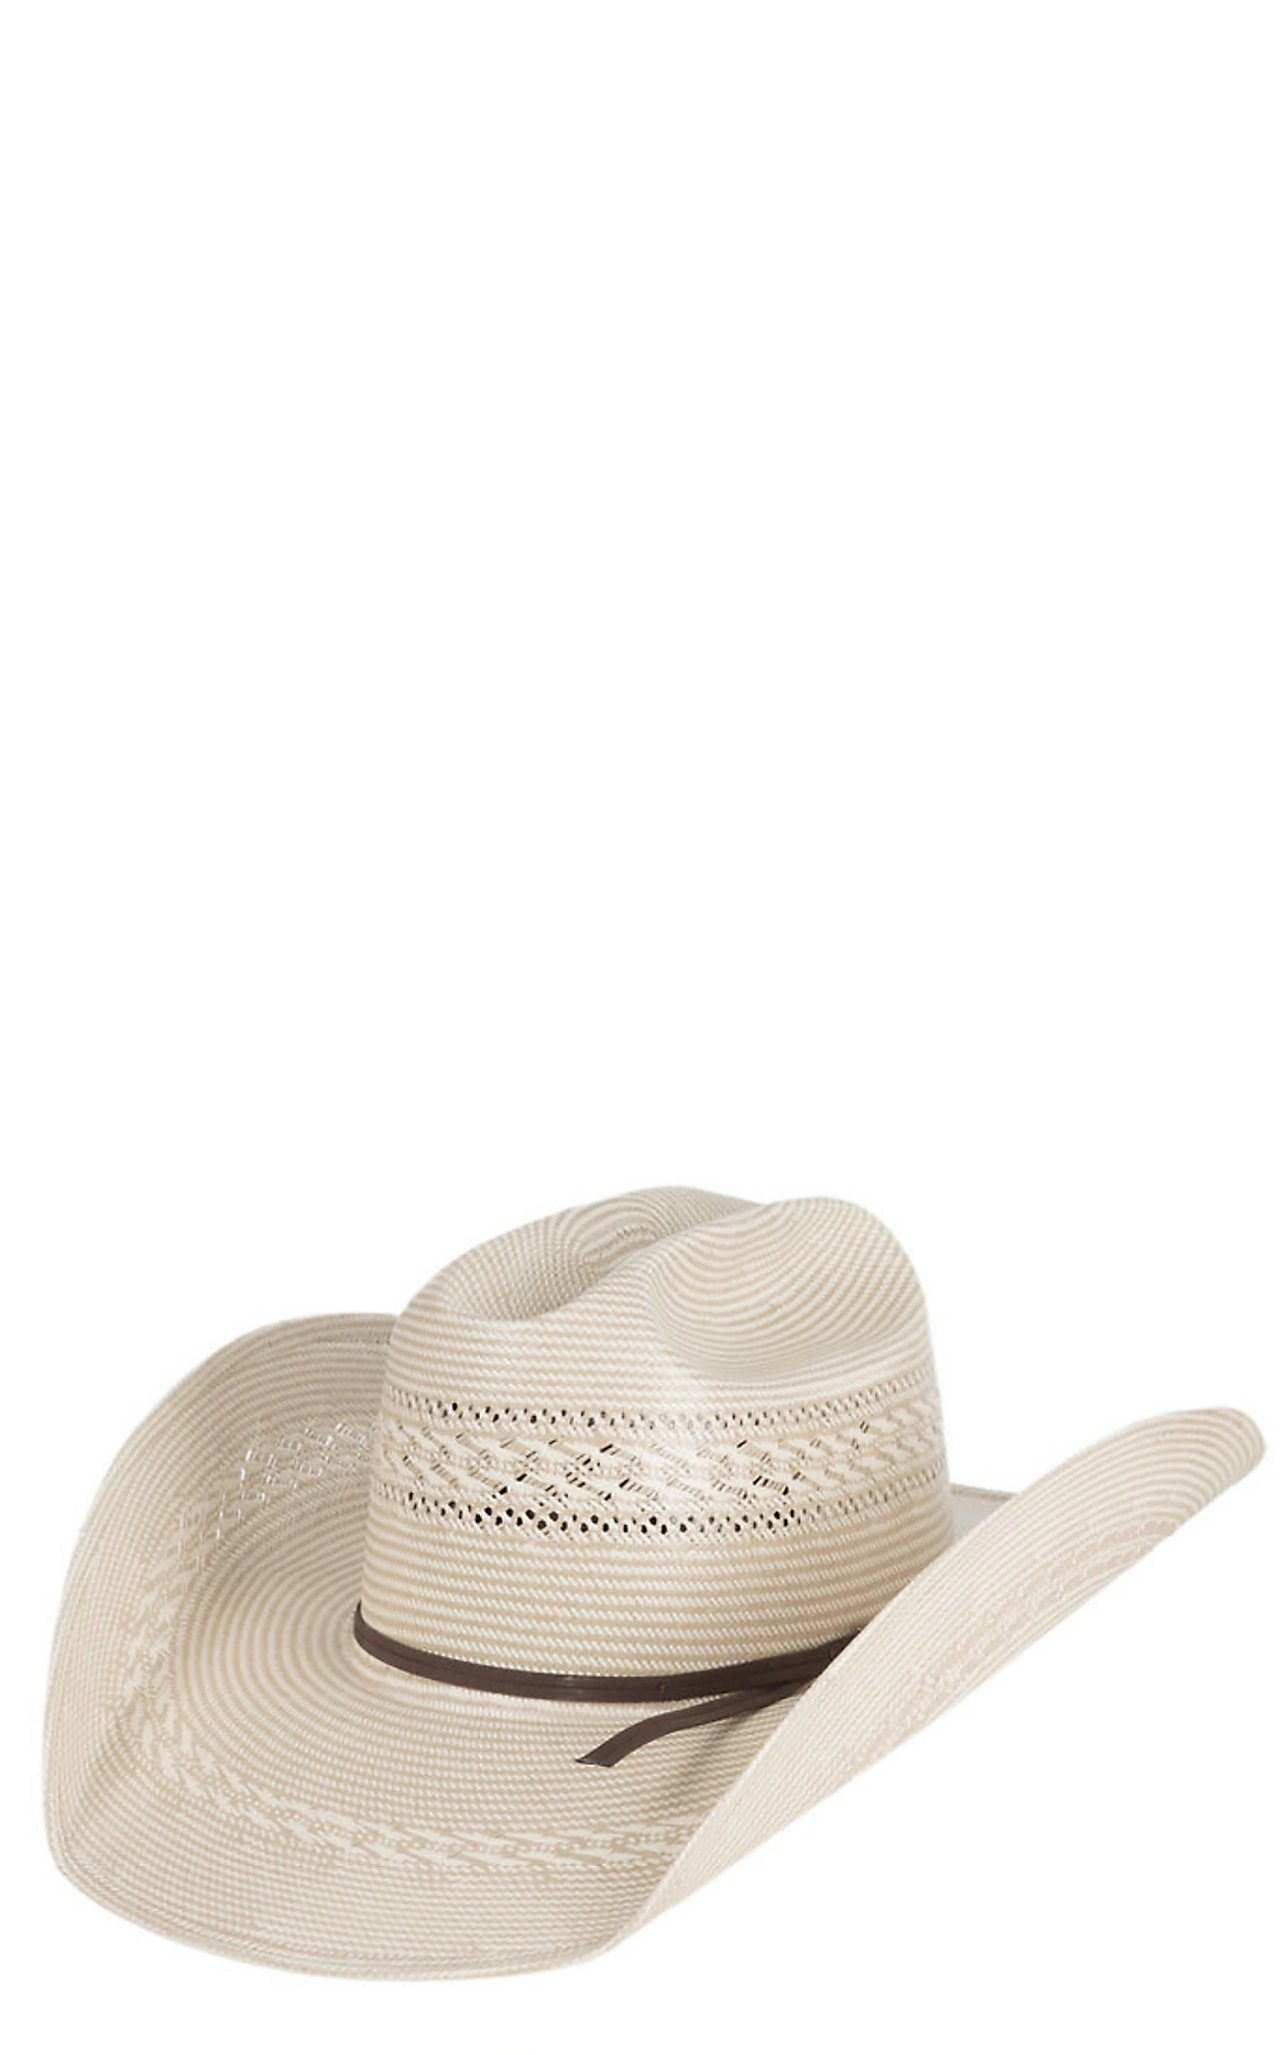 42af1798ad7 American Hat  American Hat Tuf Cooper Natural   Sand Two Tone Vent Straw  Cowboy Hat